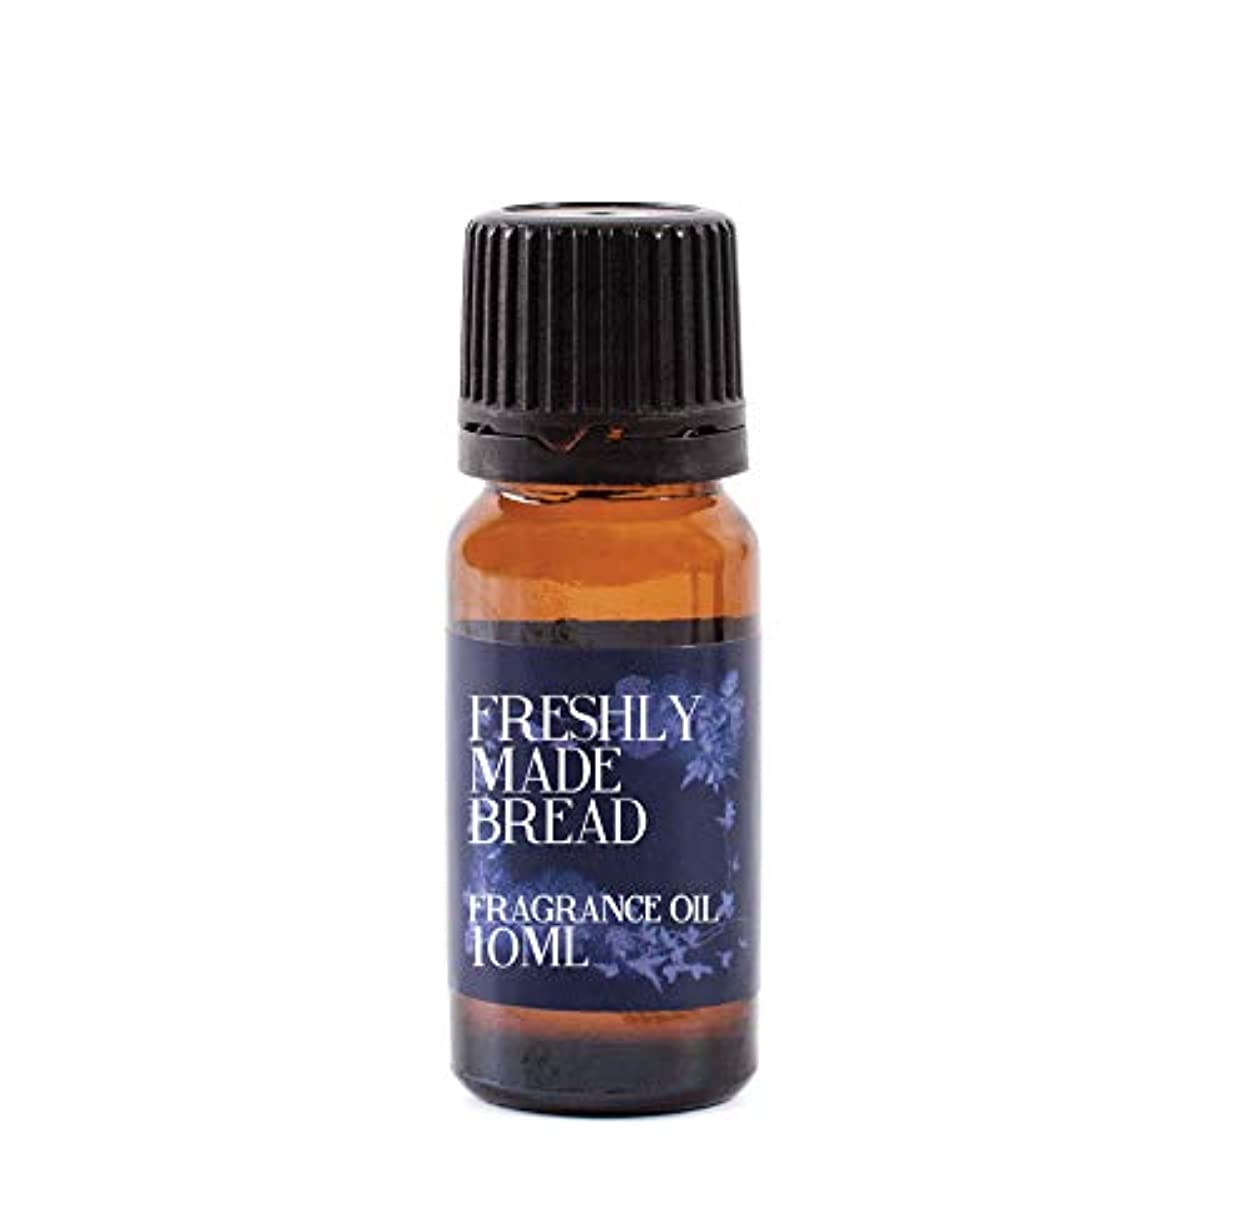 Mystic Moments | Freshly Made Bread Fragrance Oil - 10ml